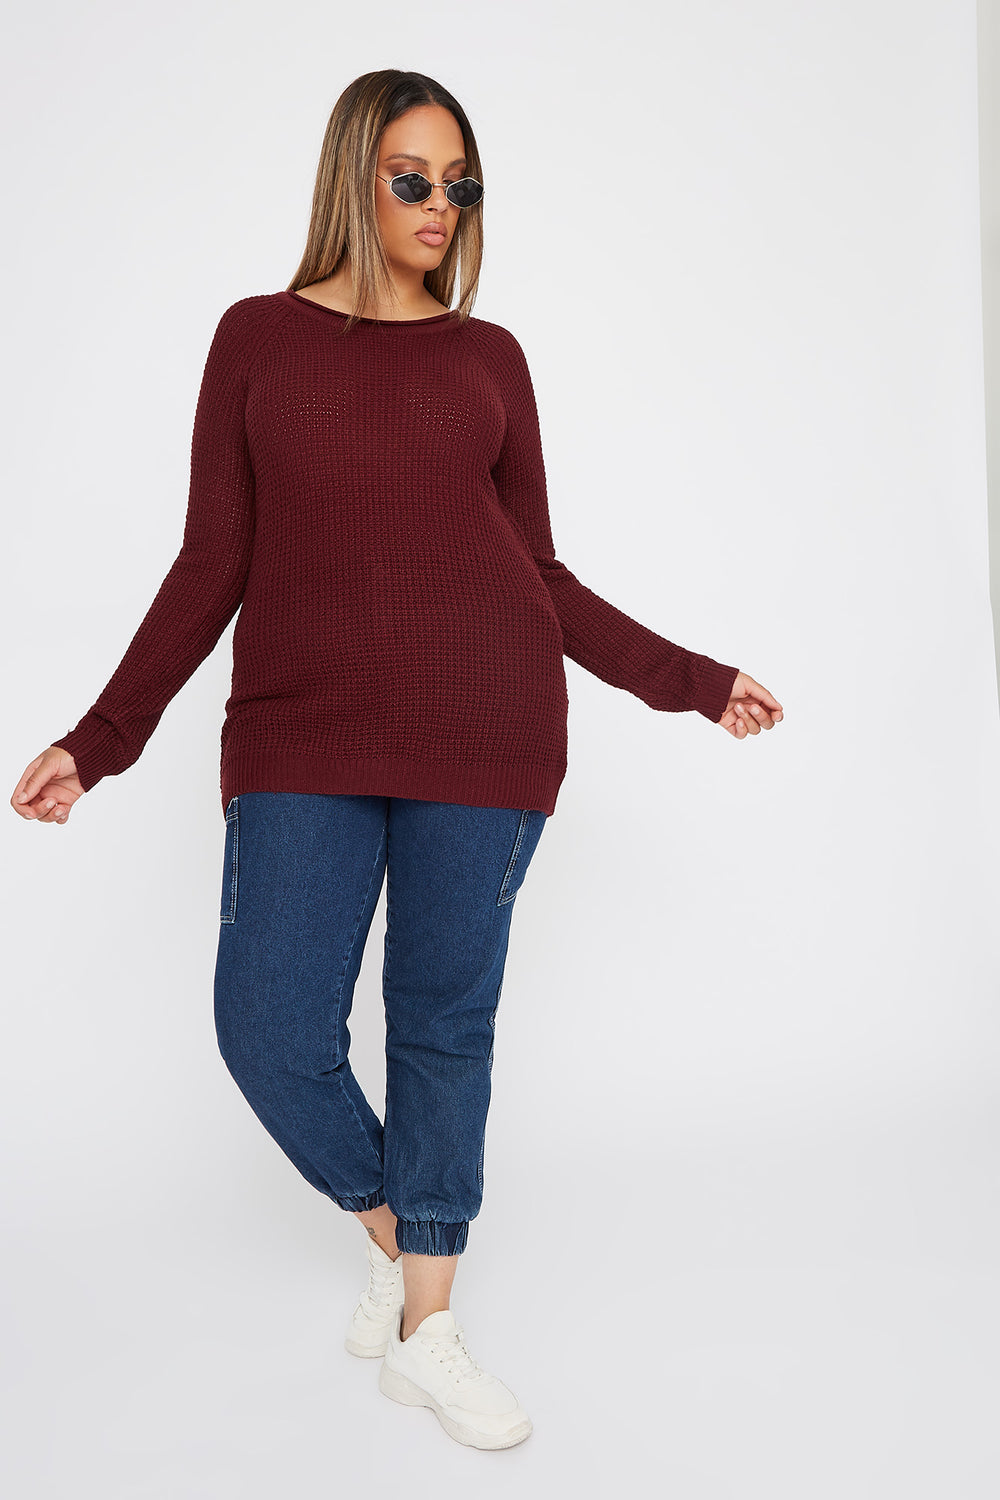 Plus Size Crochet Crew Neck Longline Sweater Burgundy